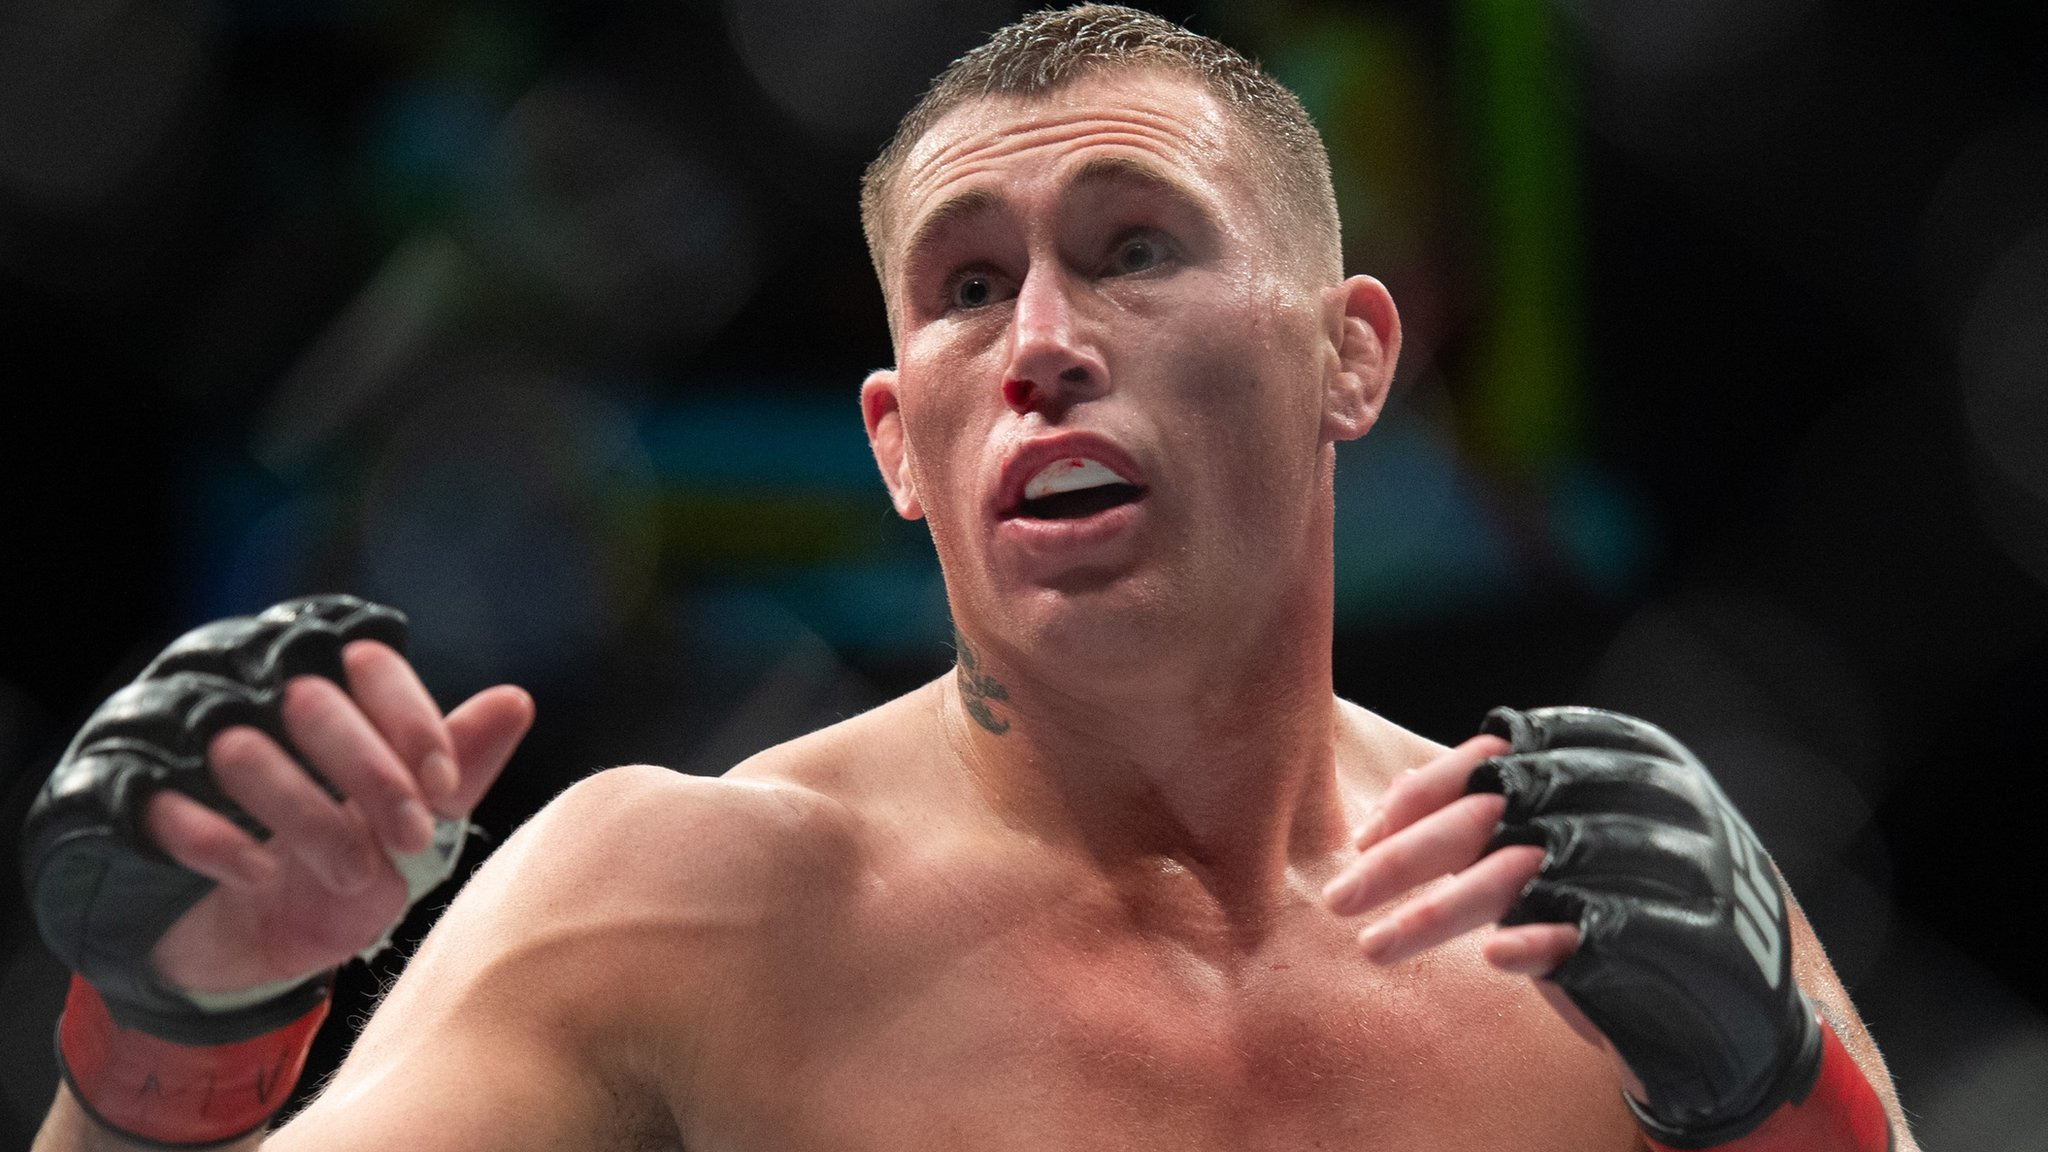 Darren Till: British UFC fighter 'lost' himself over past year